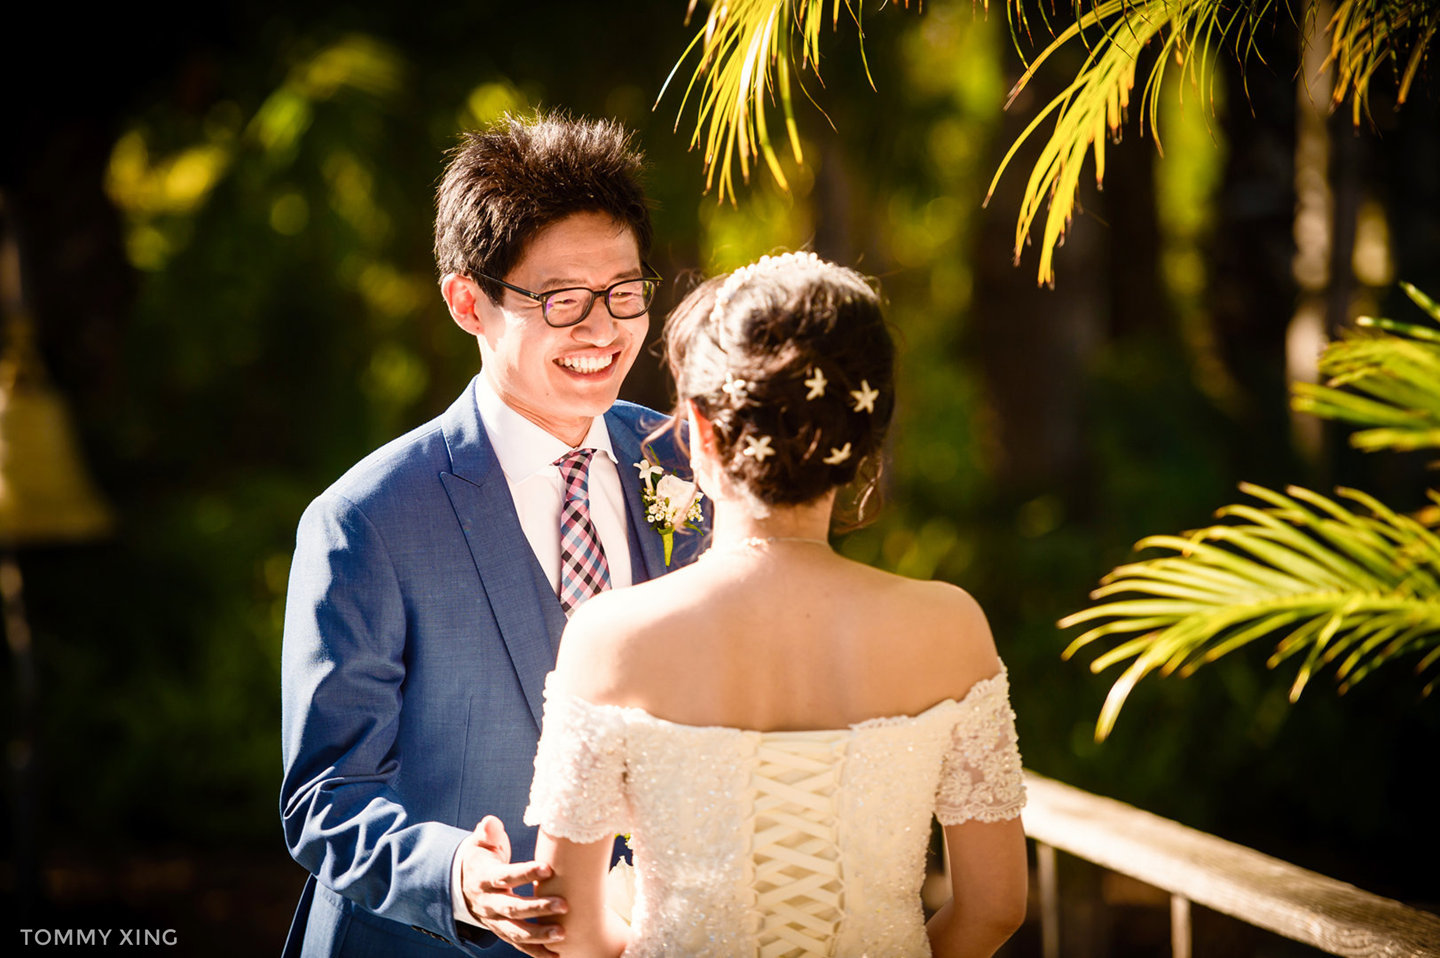 Paradise Point Resort Wedding Xiaolu & Bin San Diego 圣地亚哥婚礼摄影跟拍 Tommy Xing Photography 洛杉矶婚礼婚纱照摄影师 066.jpg